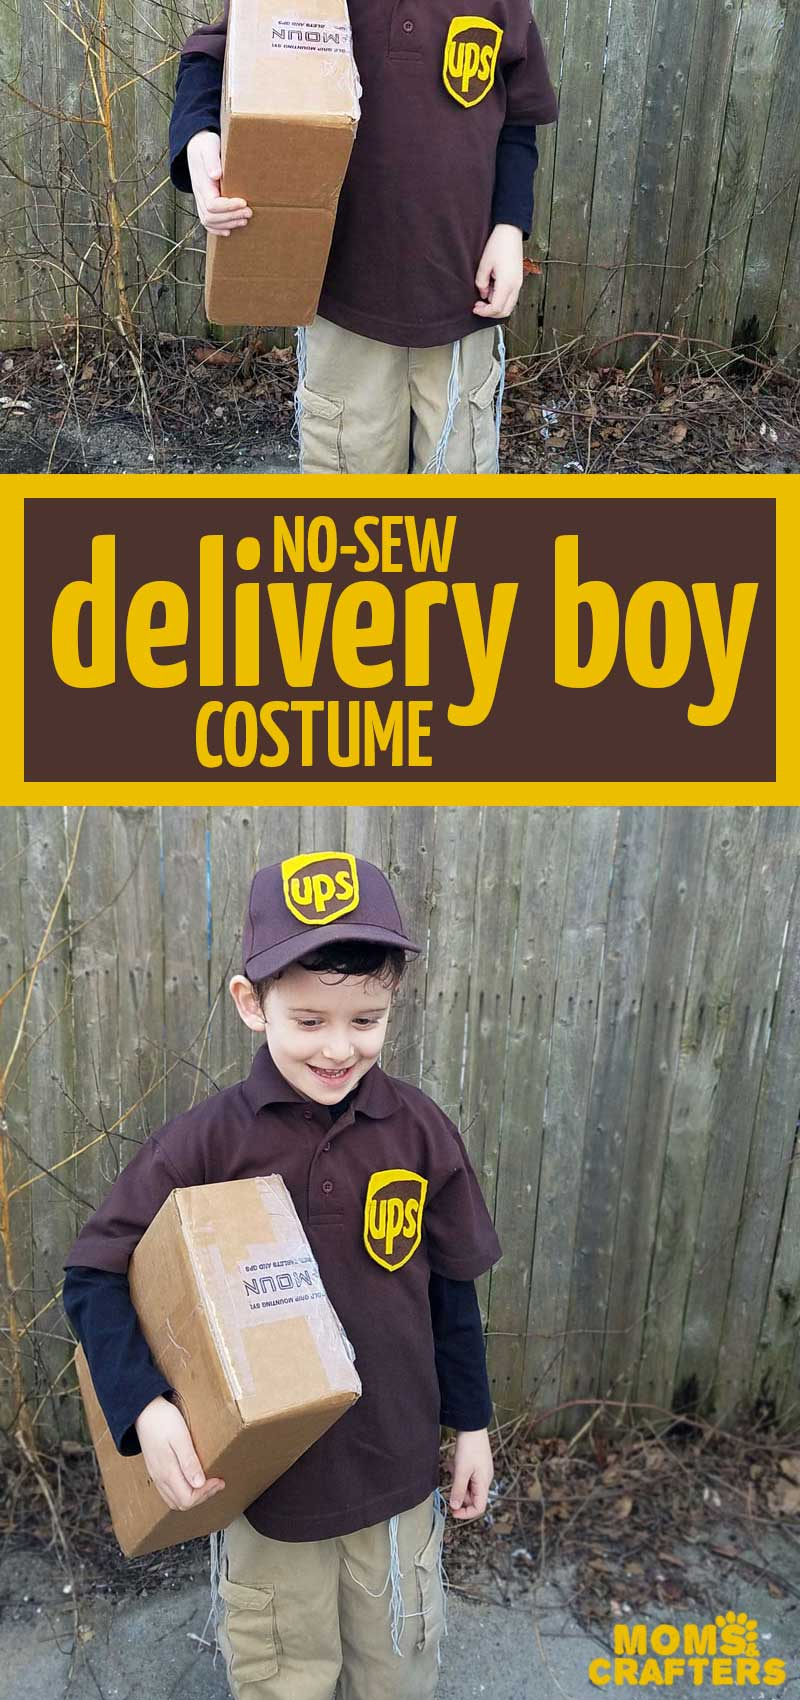 Click to learn how to make your own UPS delivery costume for boys or girls! This easy no-sew kids costume is made from real clothing that you can reuse when you're done and it's perfect for Halloween or Purim. #diycostume #halloween #crafts